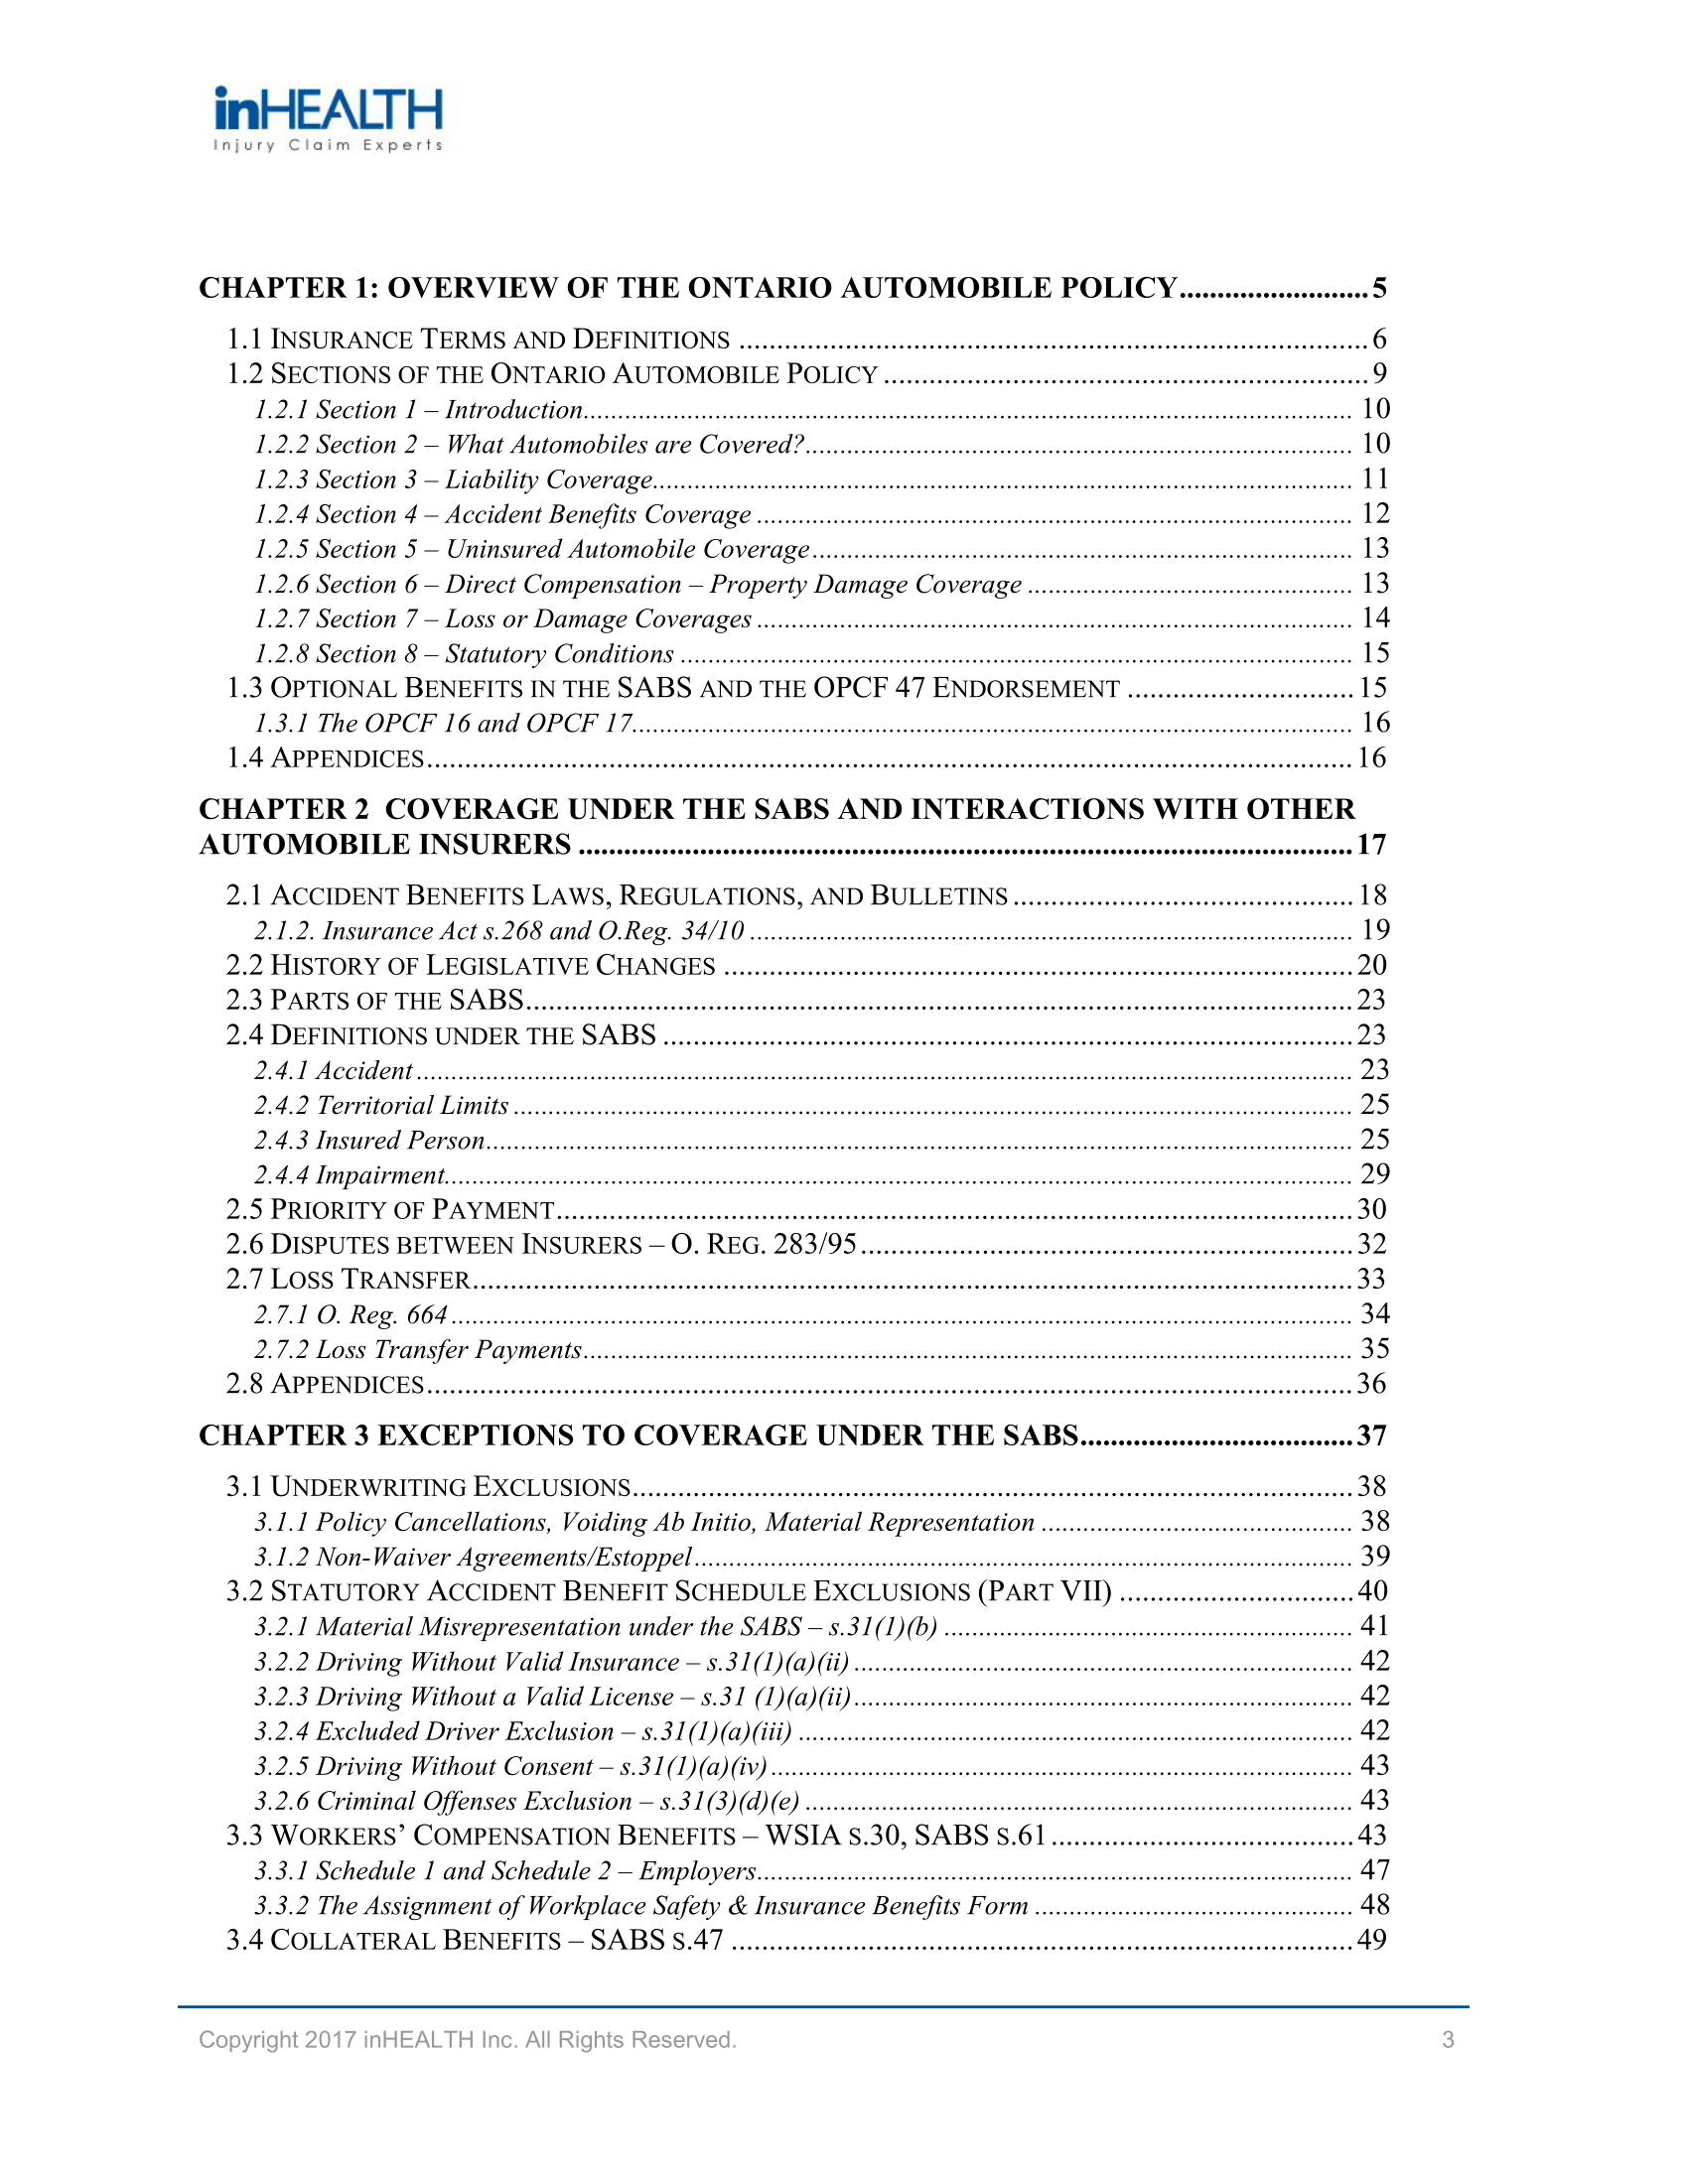 inHEALTH SABS 1 Manual Table of Contents-1